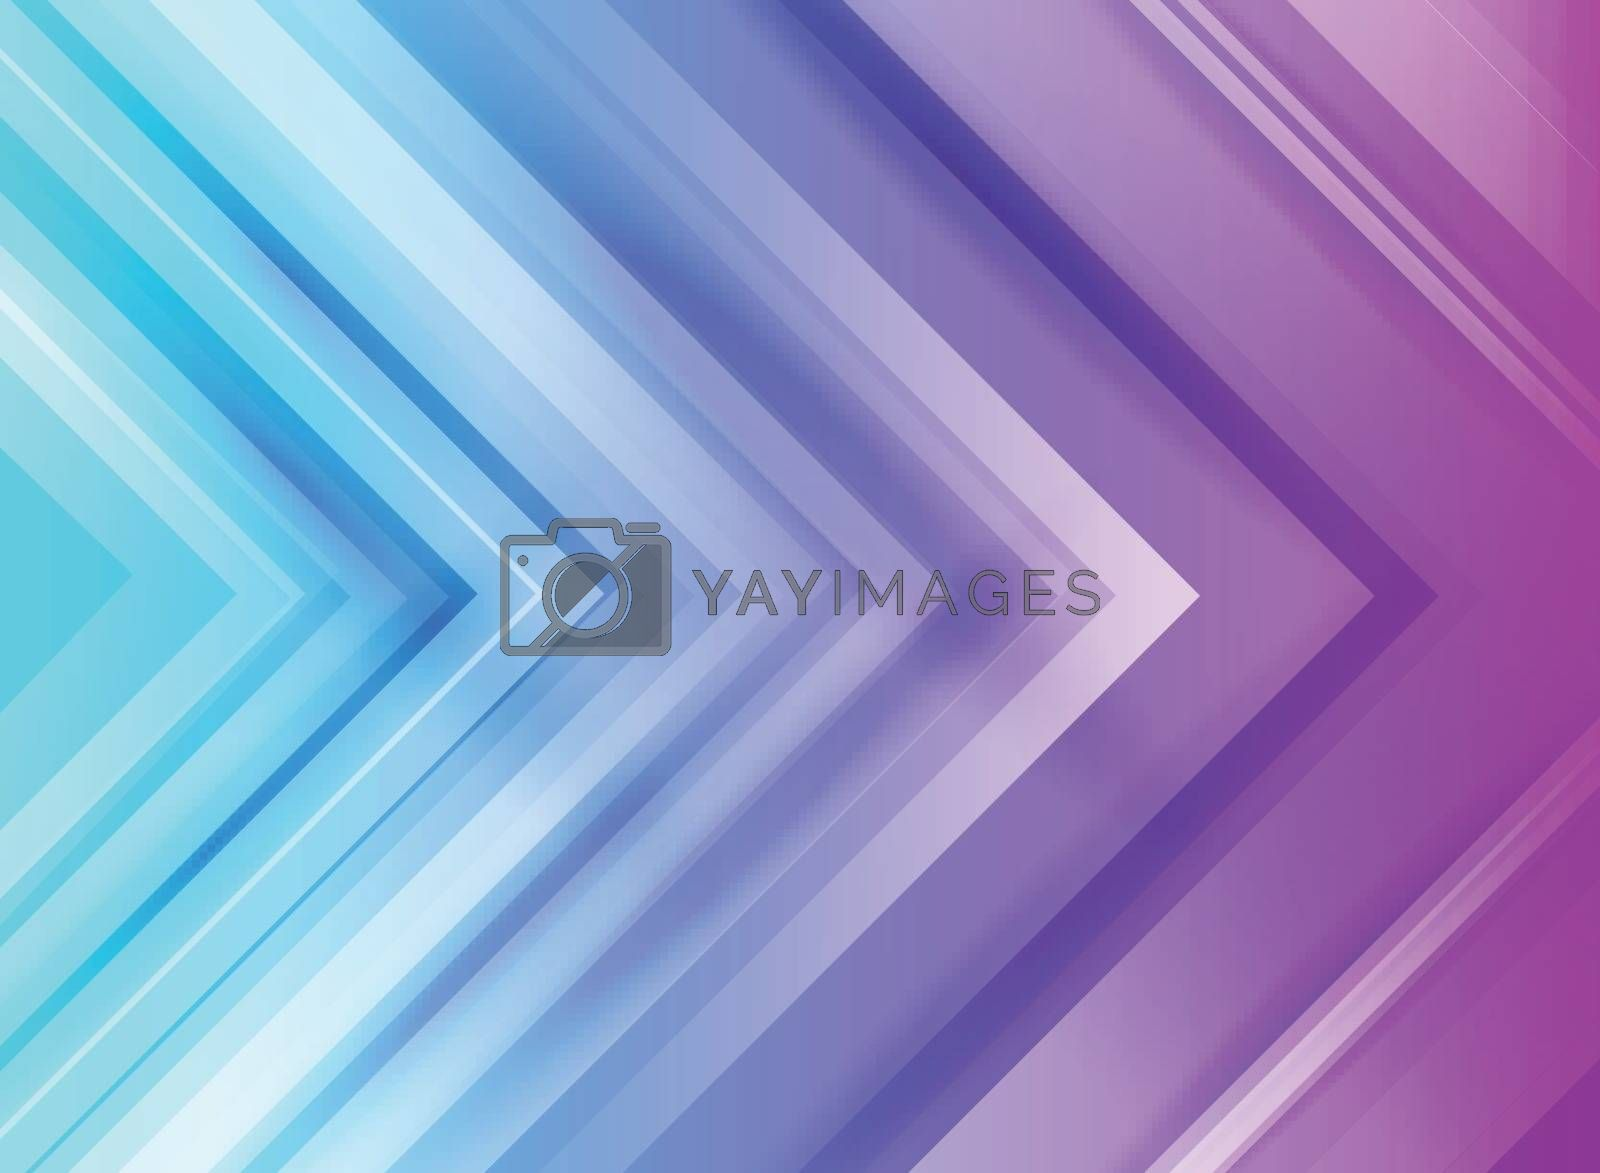 Abstract technology corporate arrows blue and purple gradients background. Vector illustration